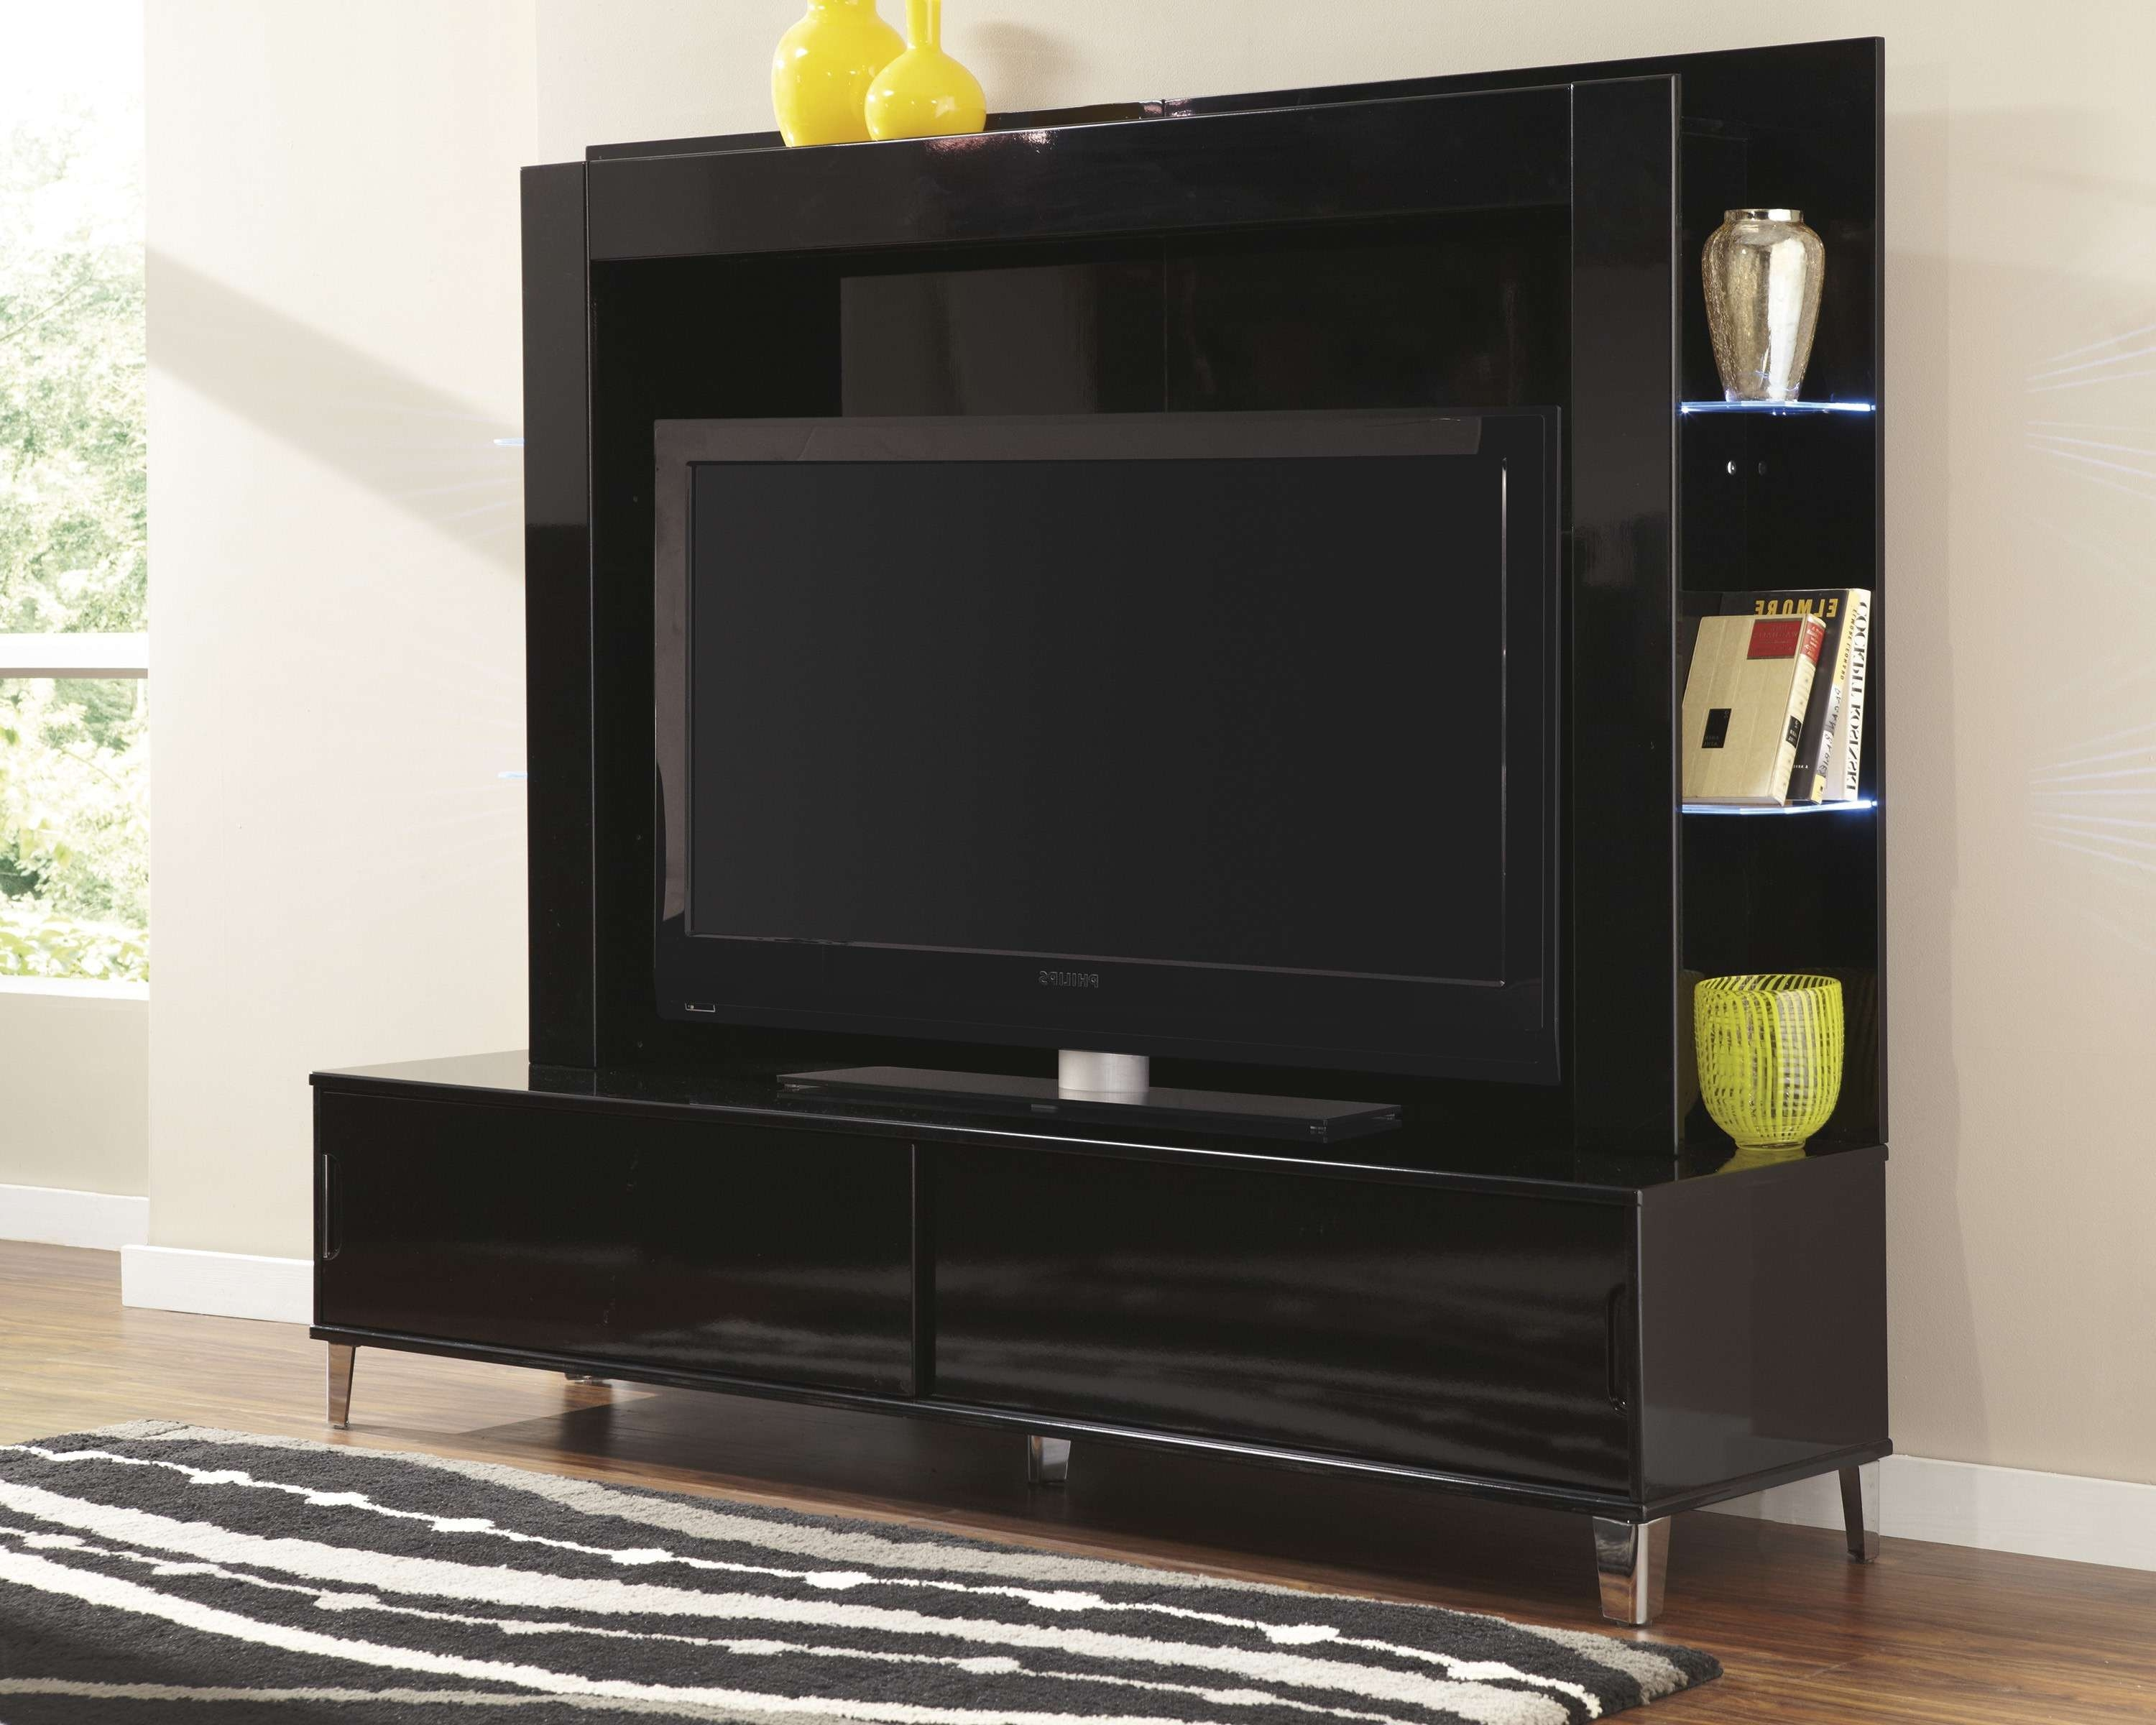 Furniture : Exotic Tall Corner Tv Stands For Flat Screens Flat Regarding Contemporary Tv Stands For Flat Screens (View 4 of 15)